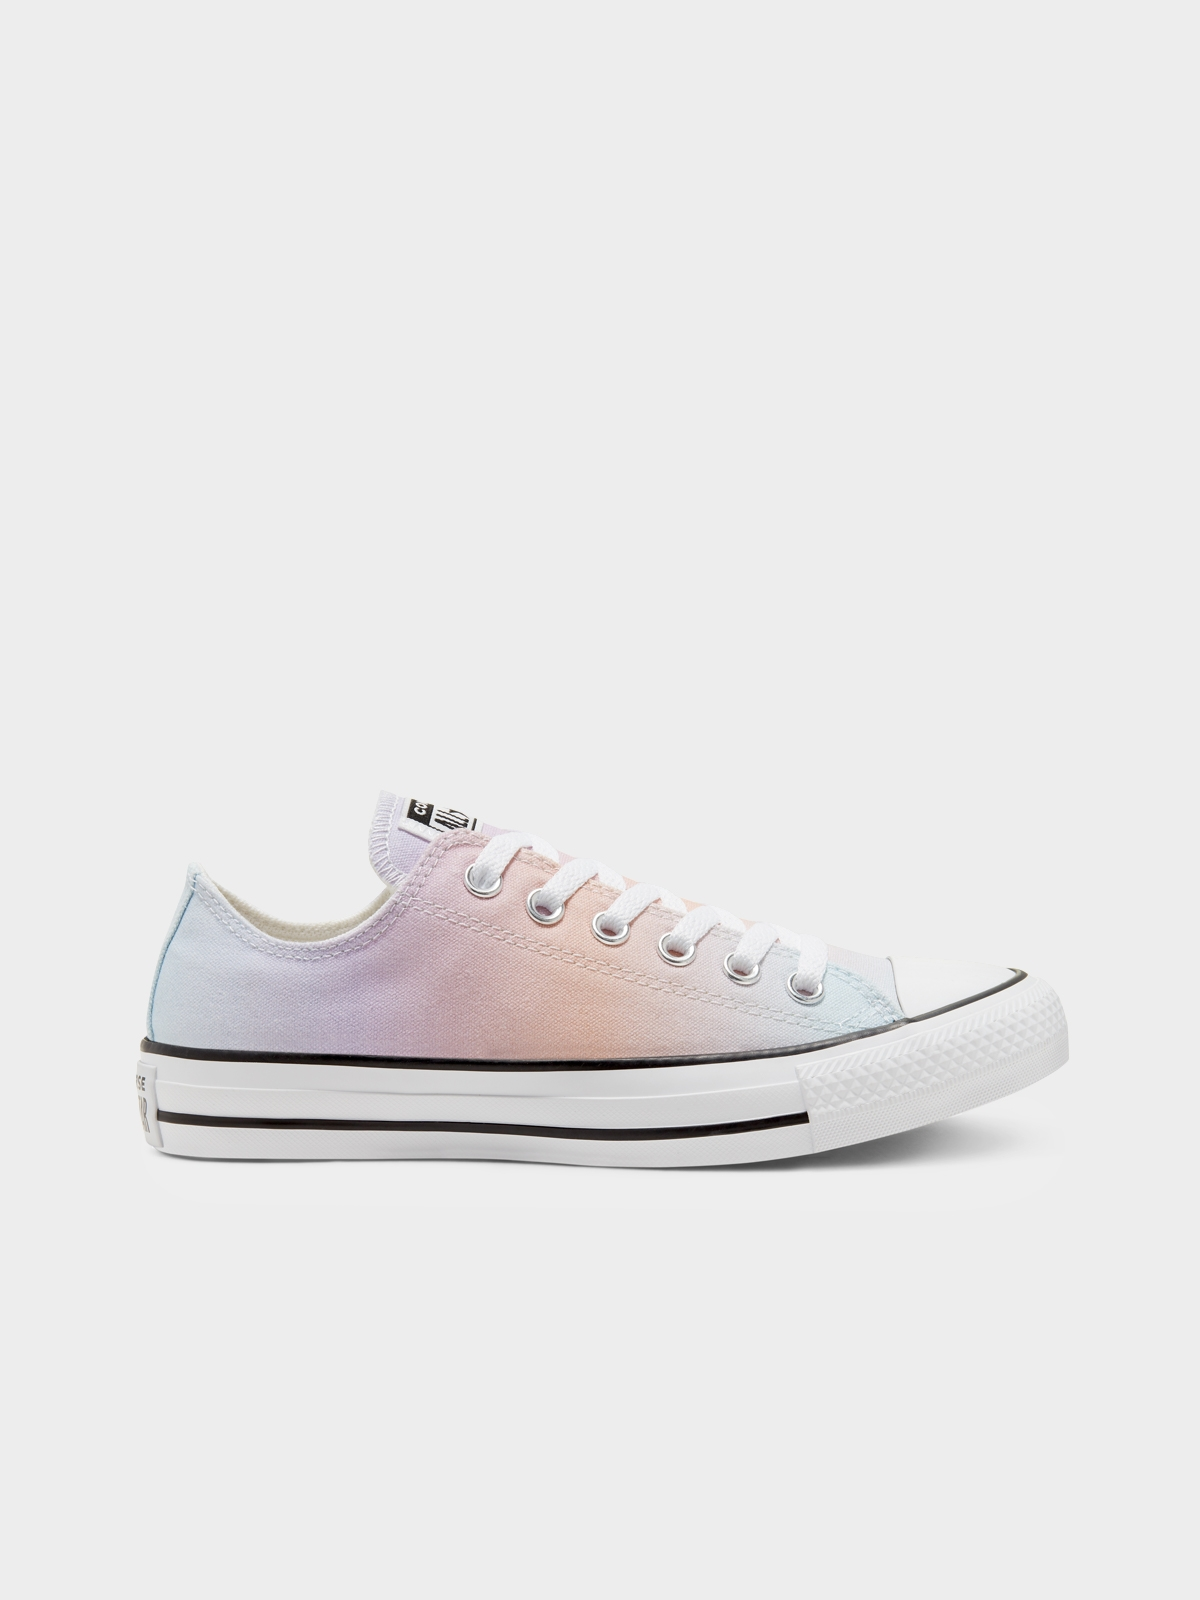 Converse Chuck Taylor All Star Dainty Mules Pink